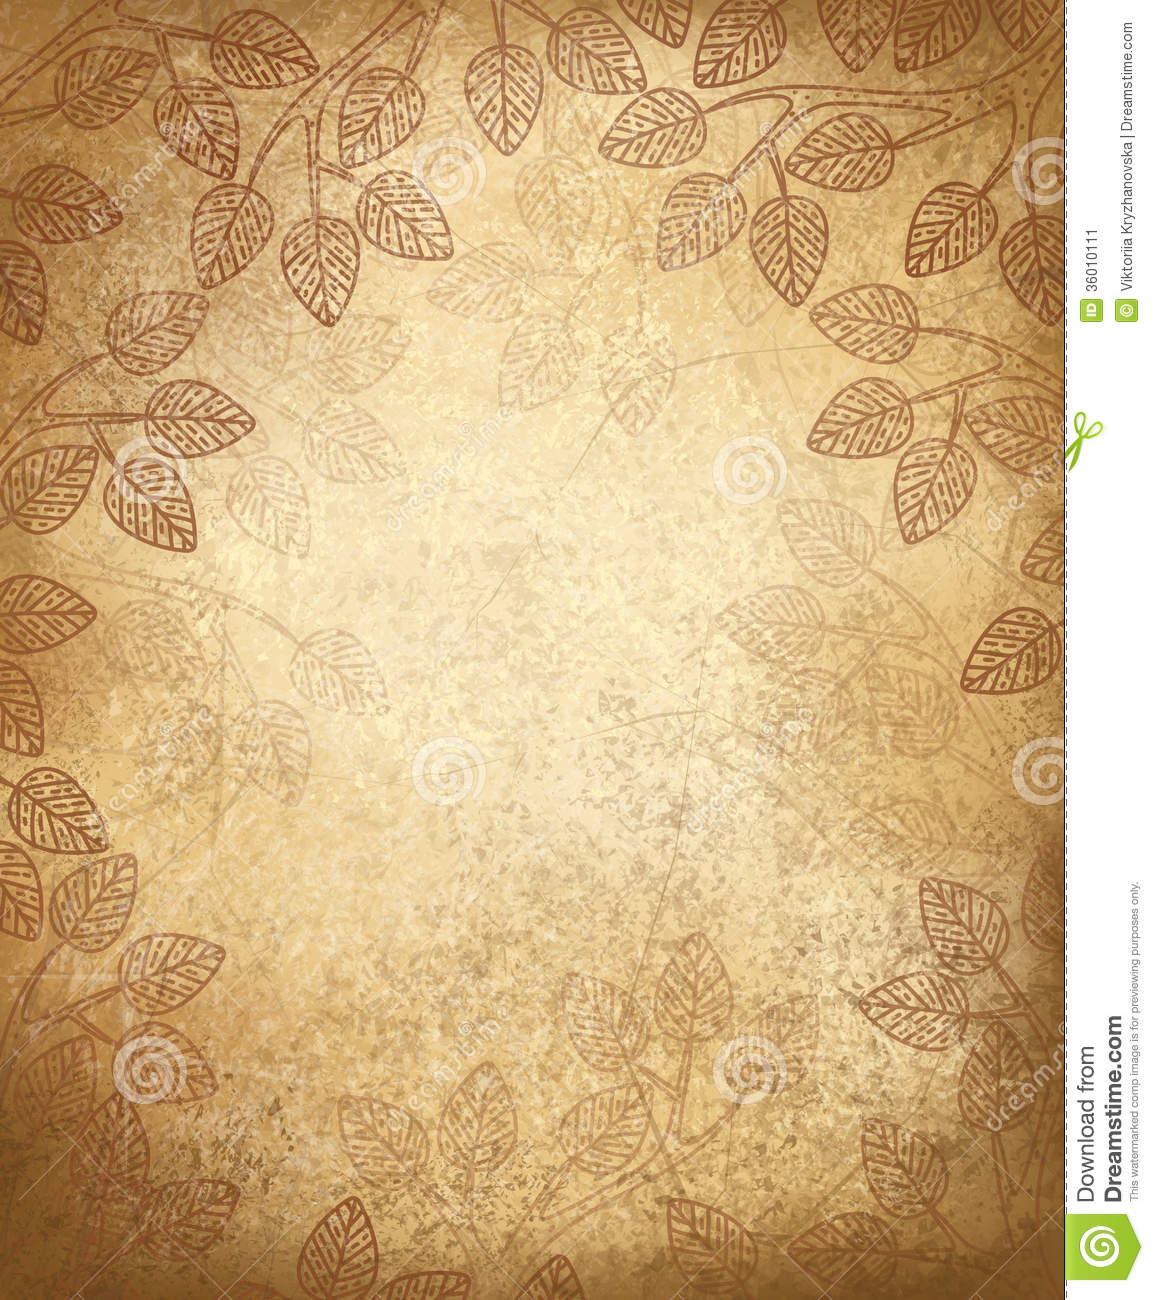 Architecture Wallpaper Fall Vector Leaves Pattern On Old Paper Background Stock Image